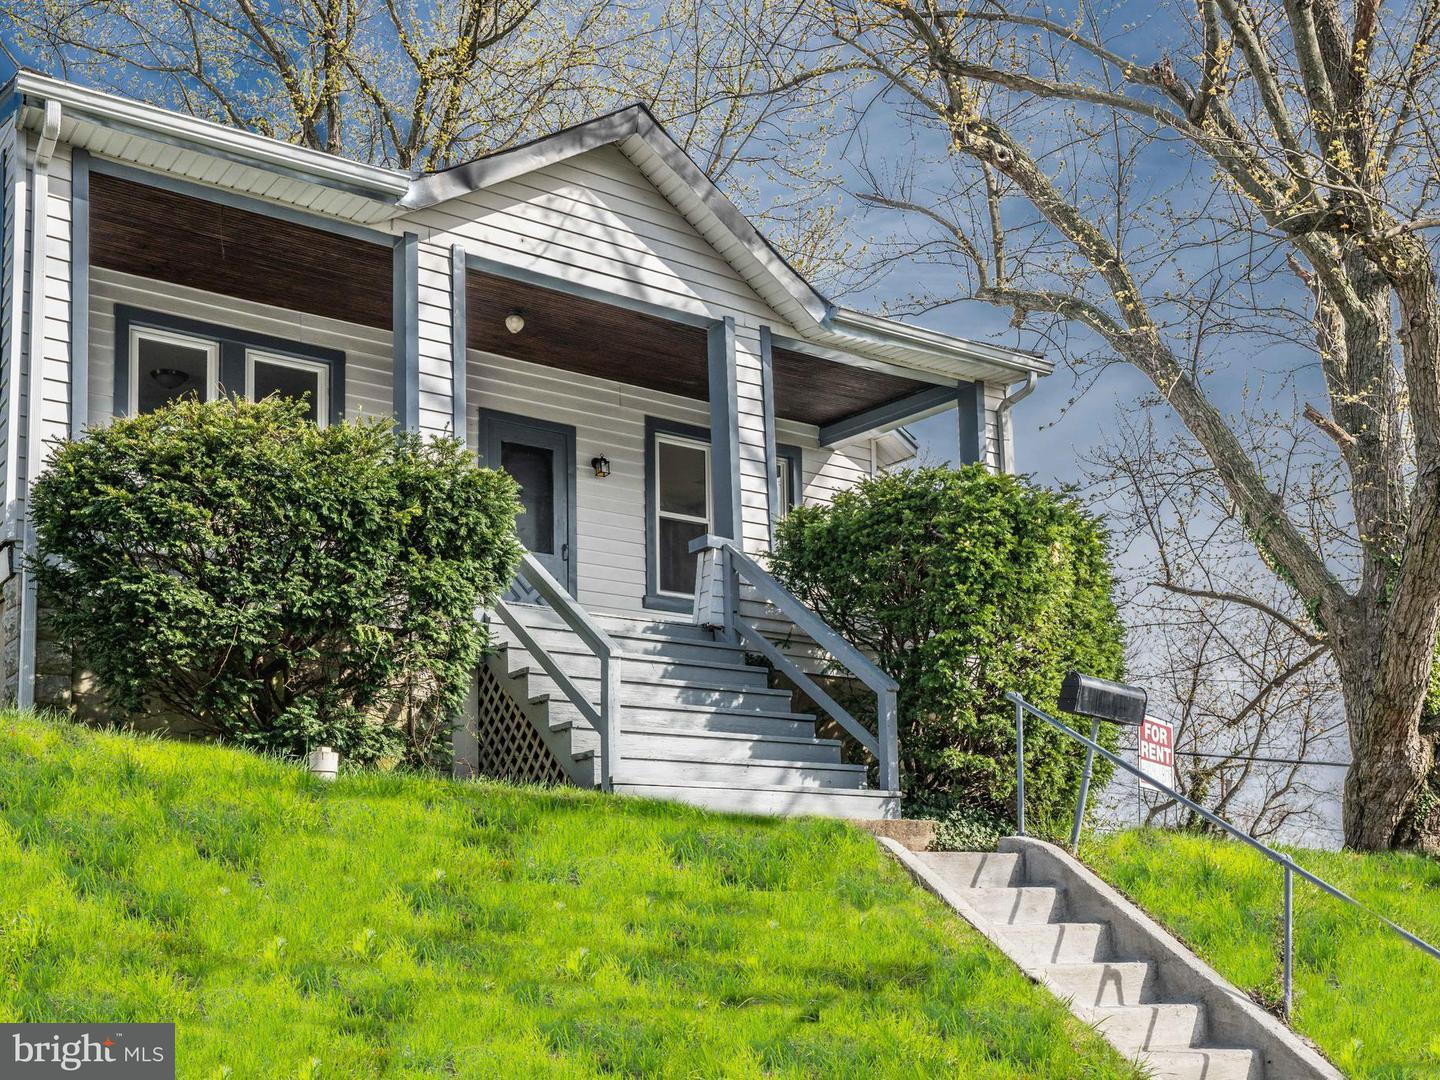 Other Residential for Sale at 6201 Fair Oaks Ave Baltimore, Maryland 21214 United States